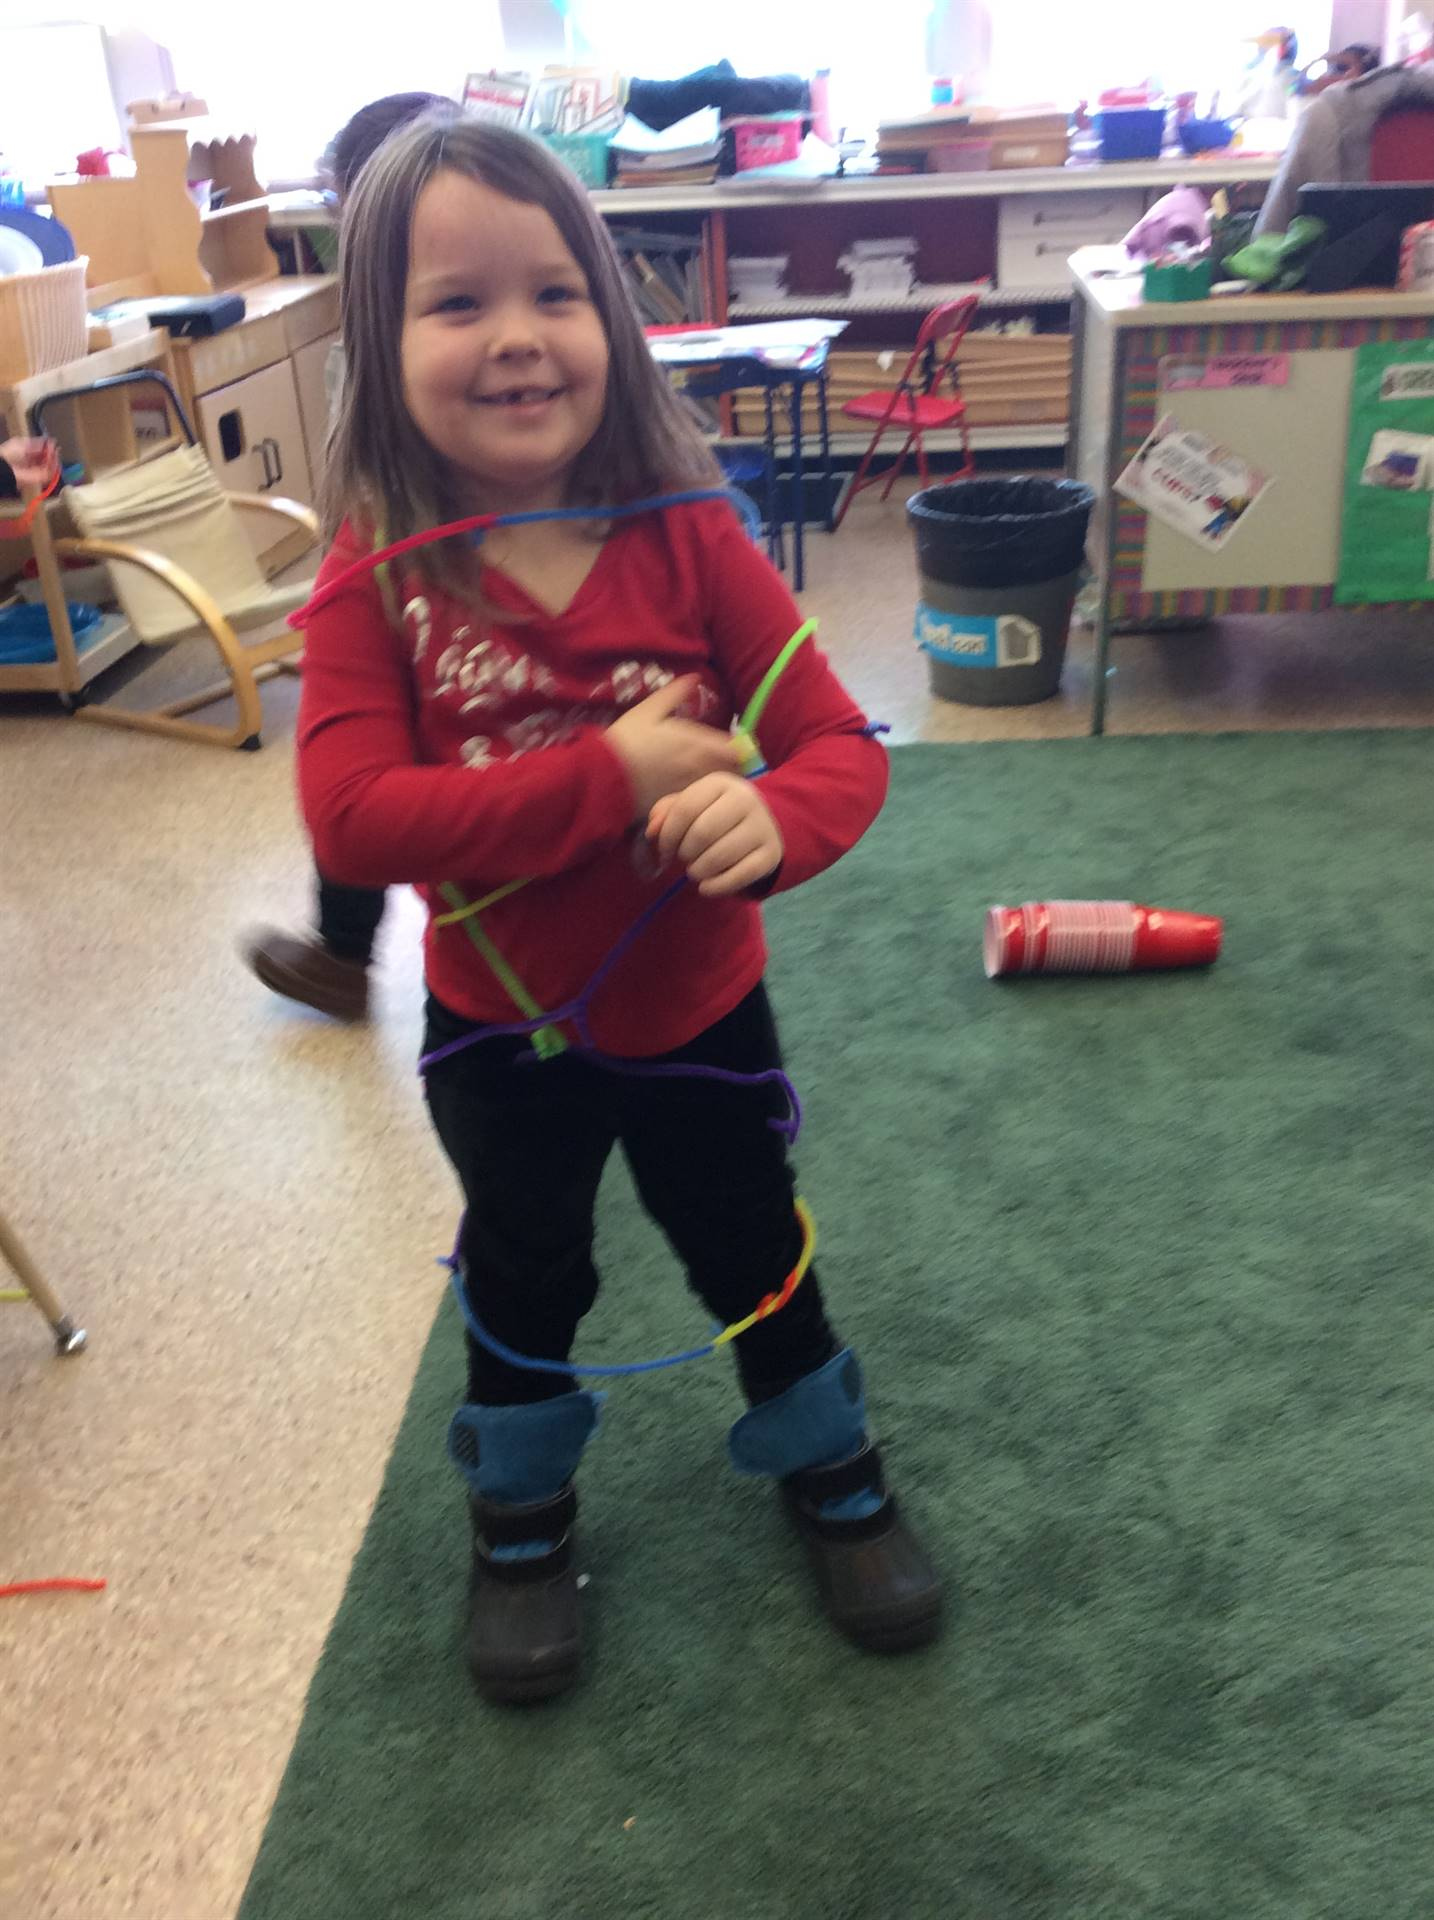 A pre-k girl with a red shirt, black pants, and black and blue boots wrapped in multicolored pipe cl